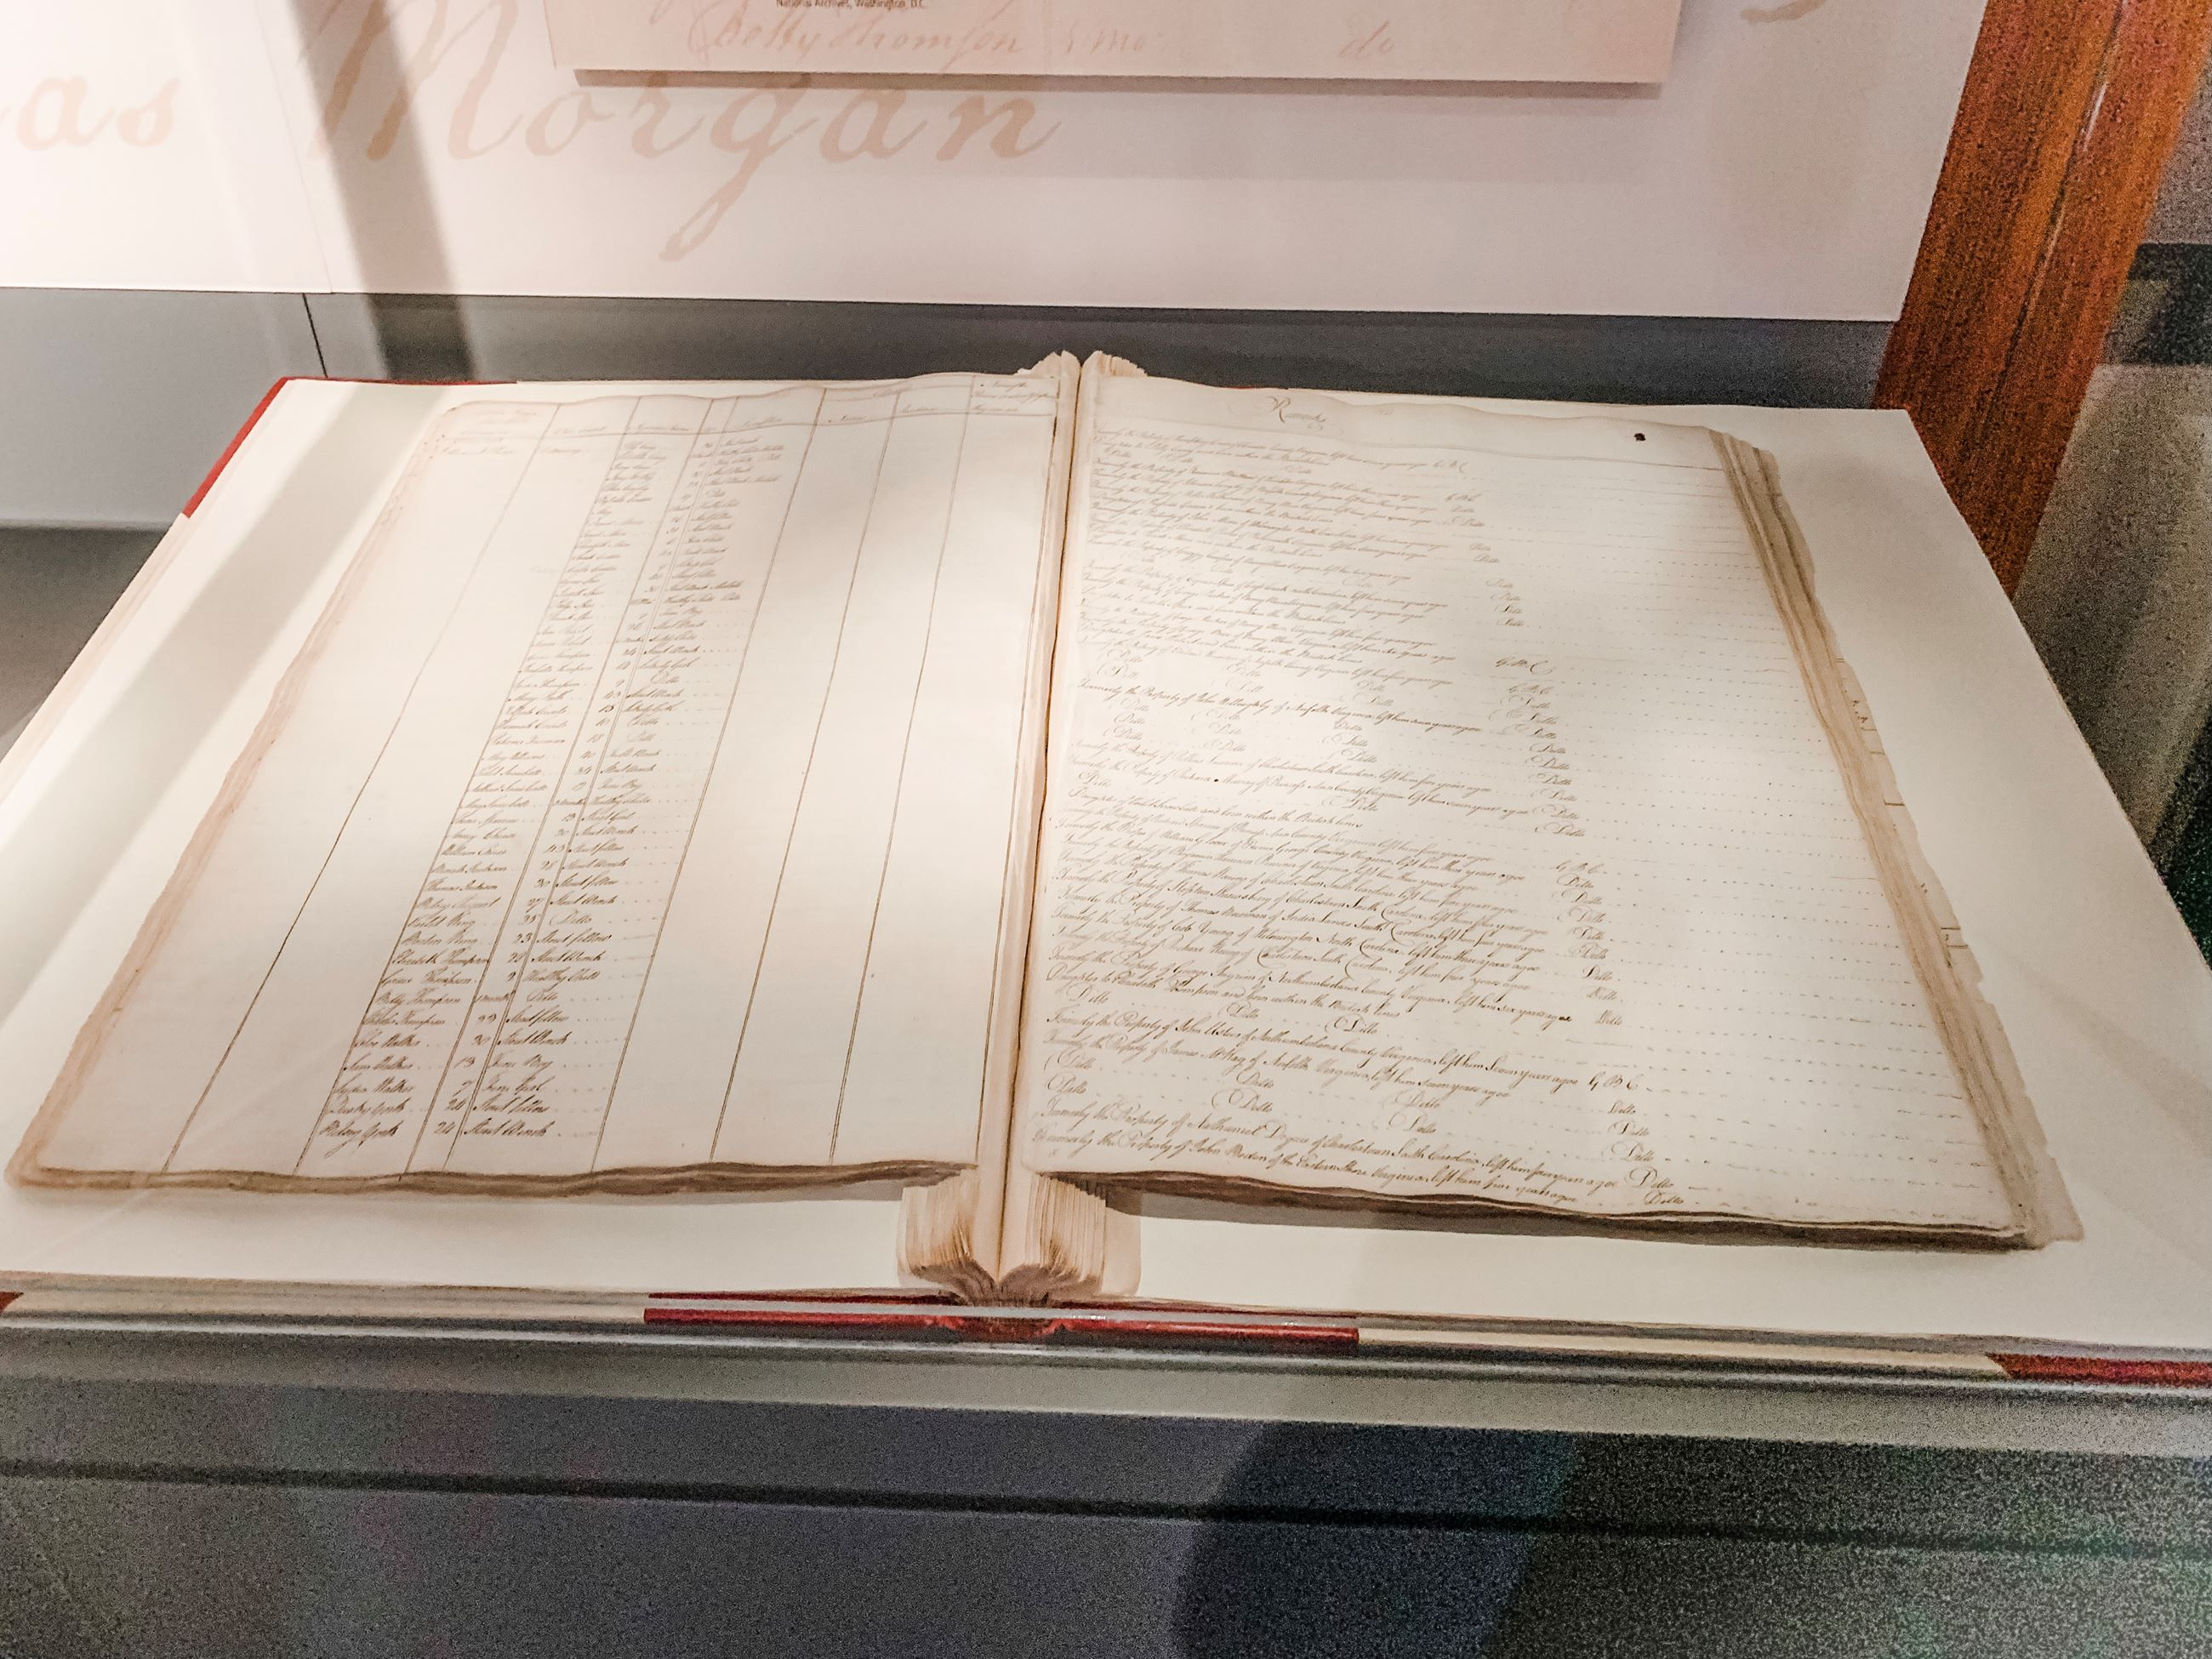 Inspection Roll of Negroes Book No. 1 on Loan from the U.S. National Archives